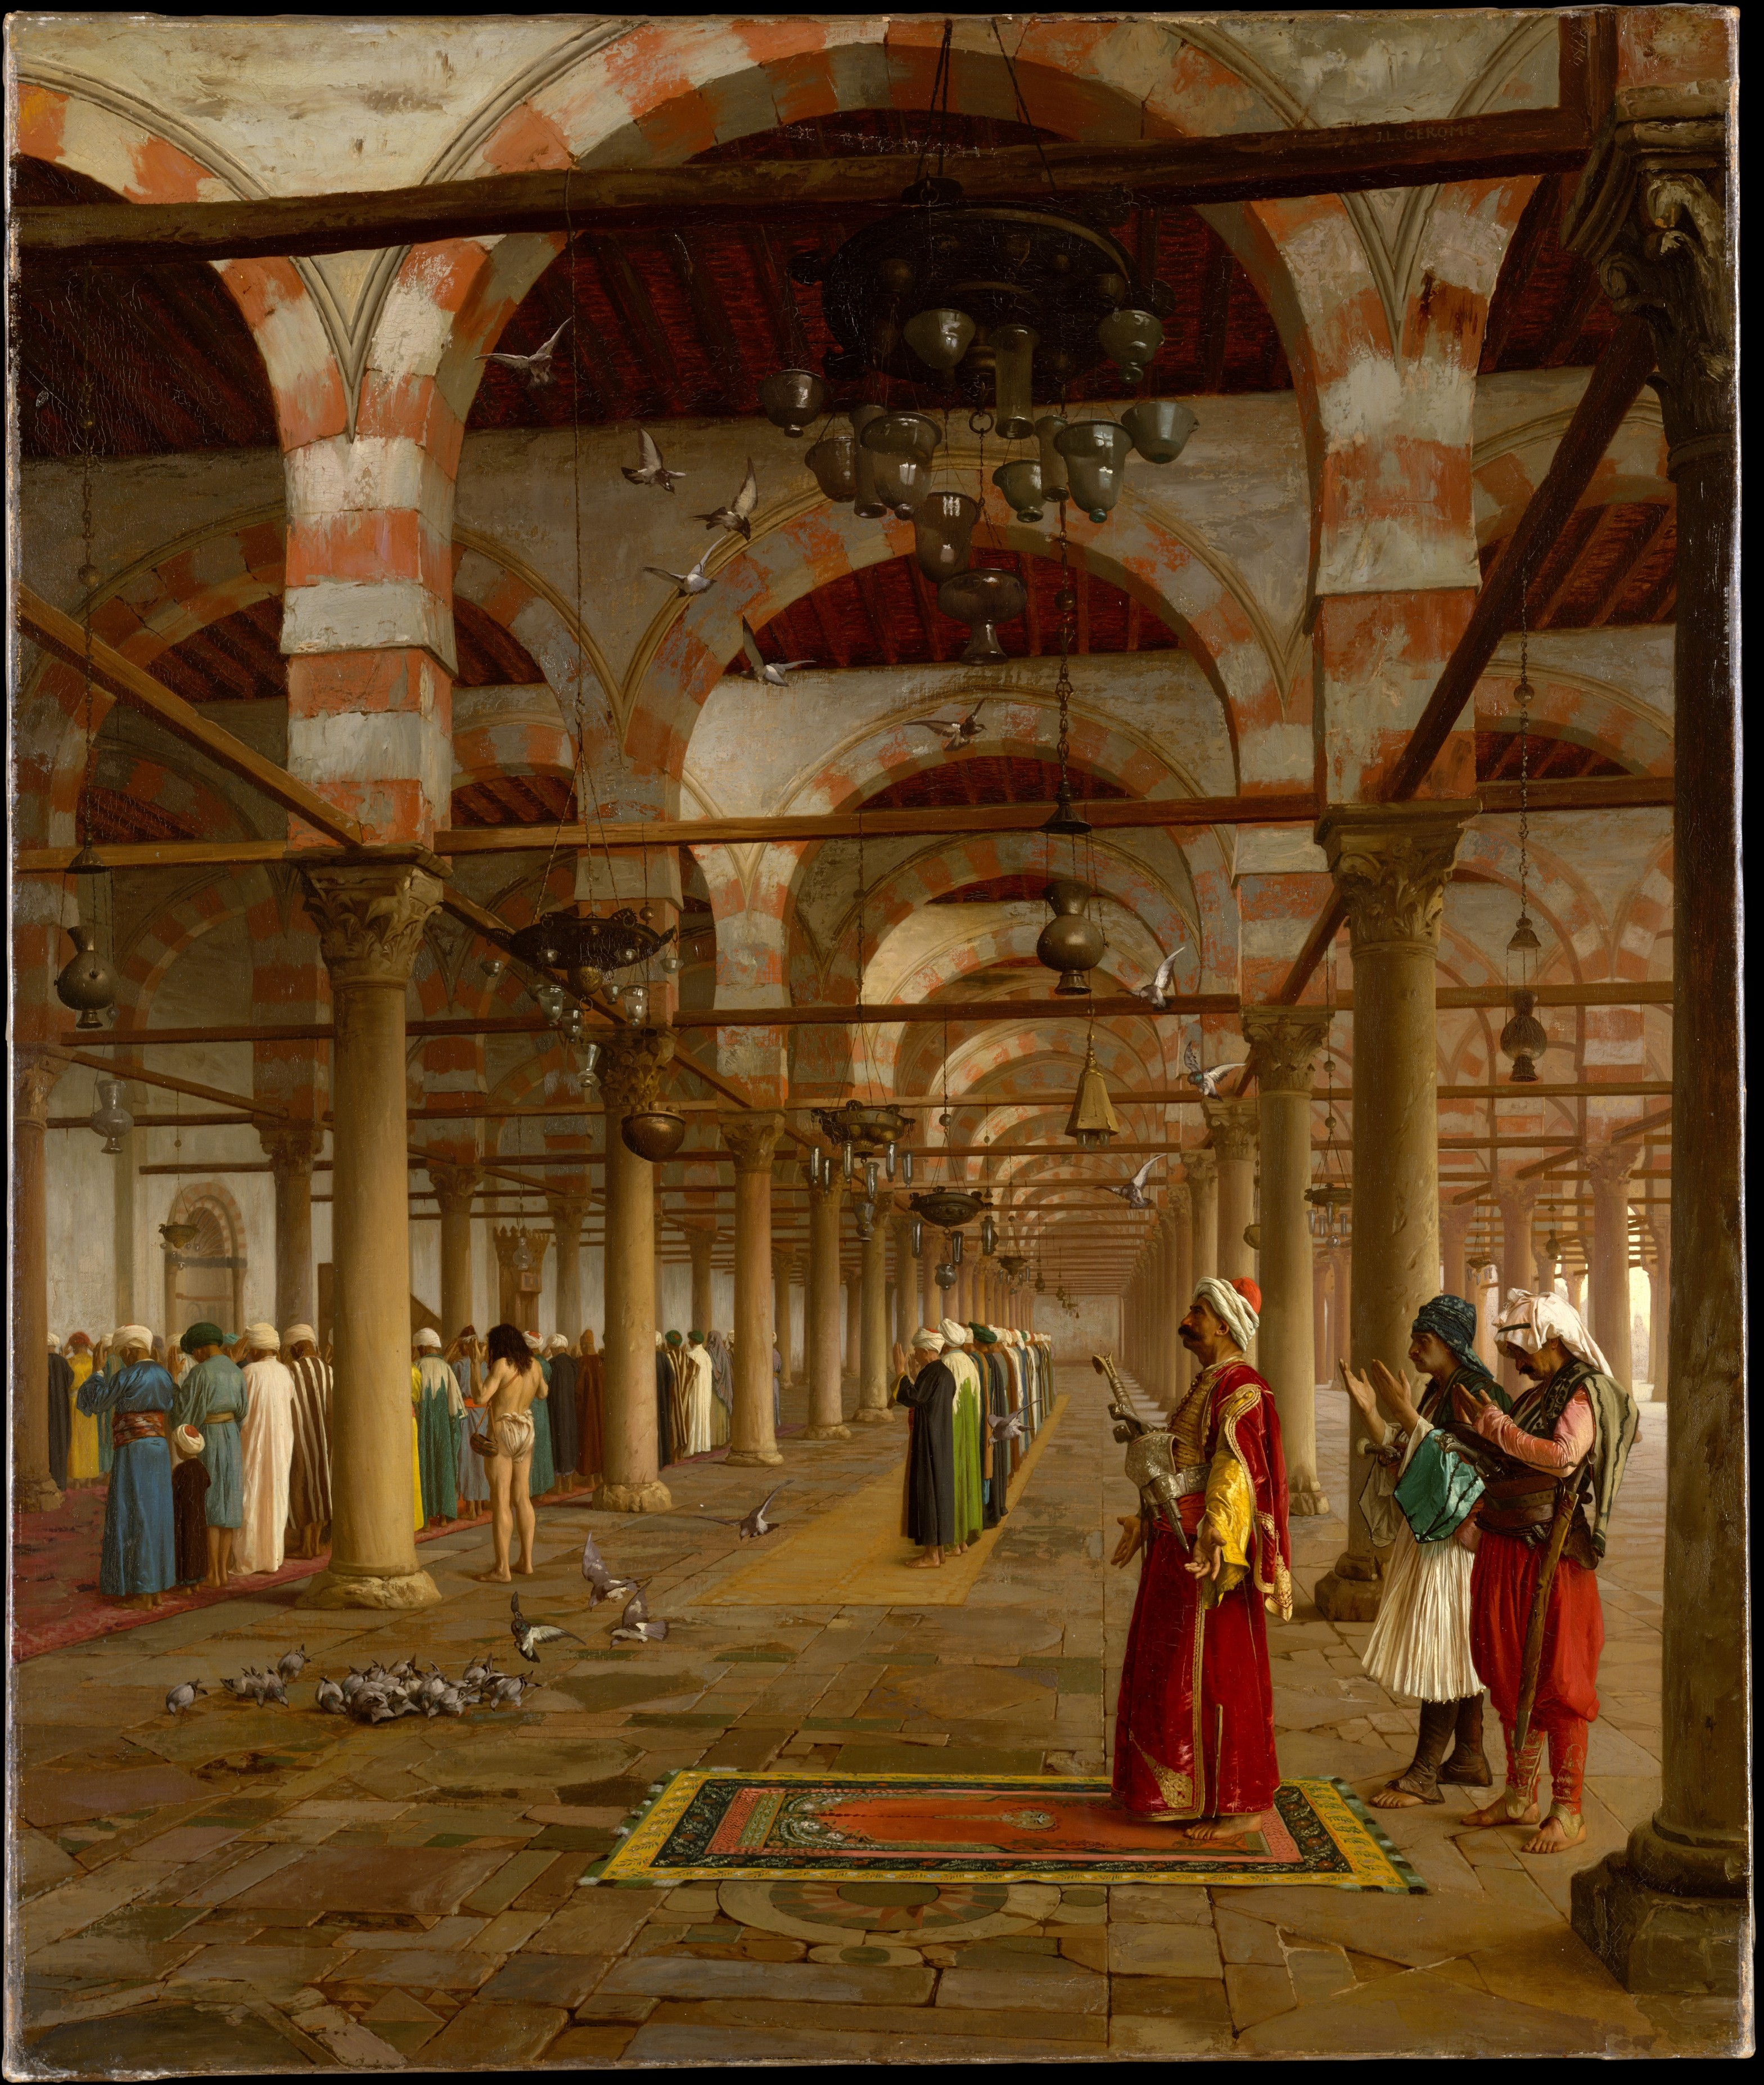 Jeanlon Grme  Prayer In The Mosque  The Met Download Image